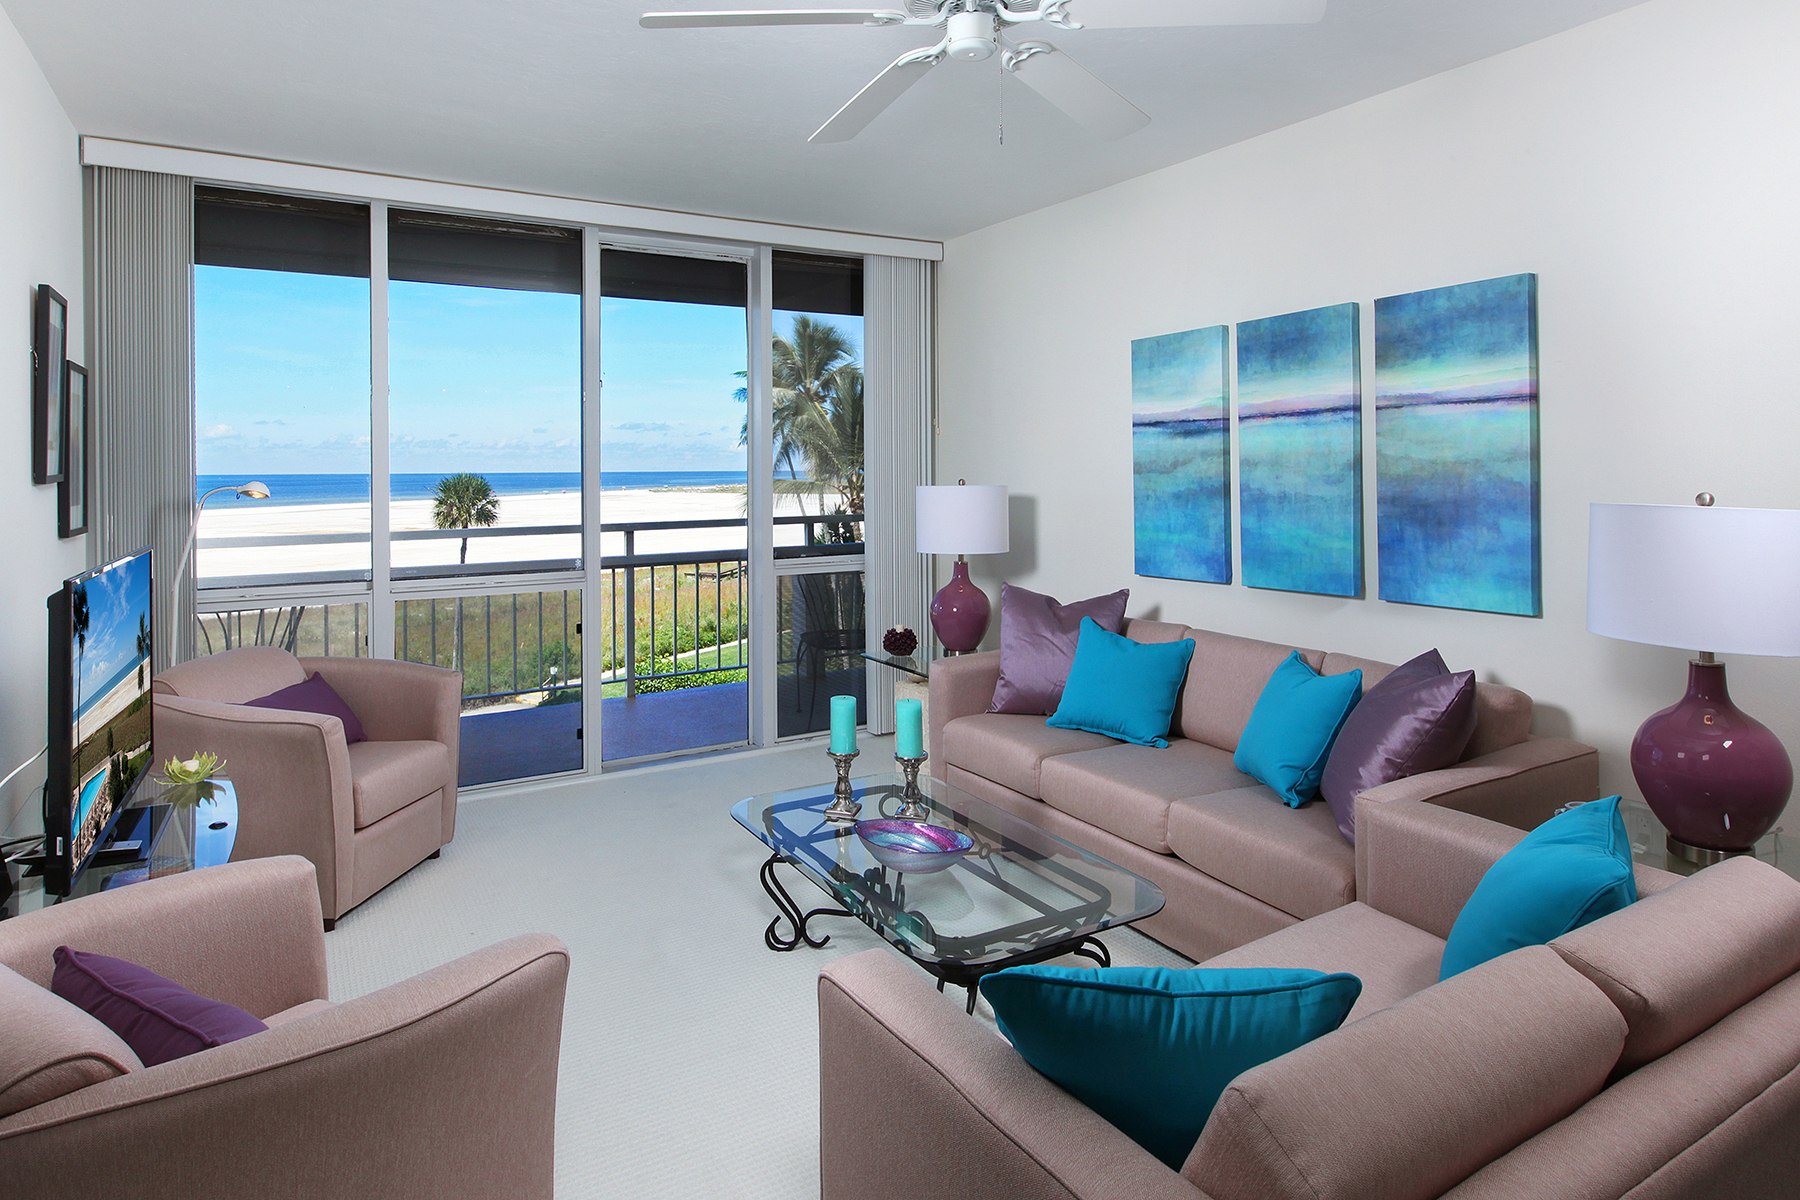 Condominium for Sale at TRADEWINDS 180 Seaview Ct 415 Marco Island, Florida, 34145 United States